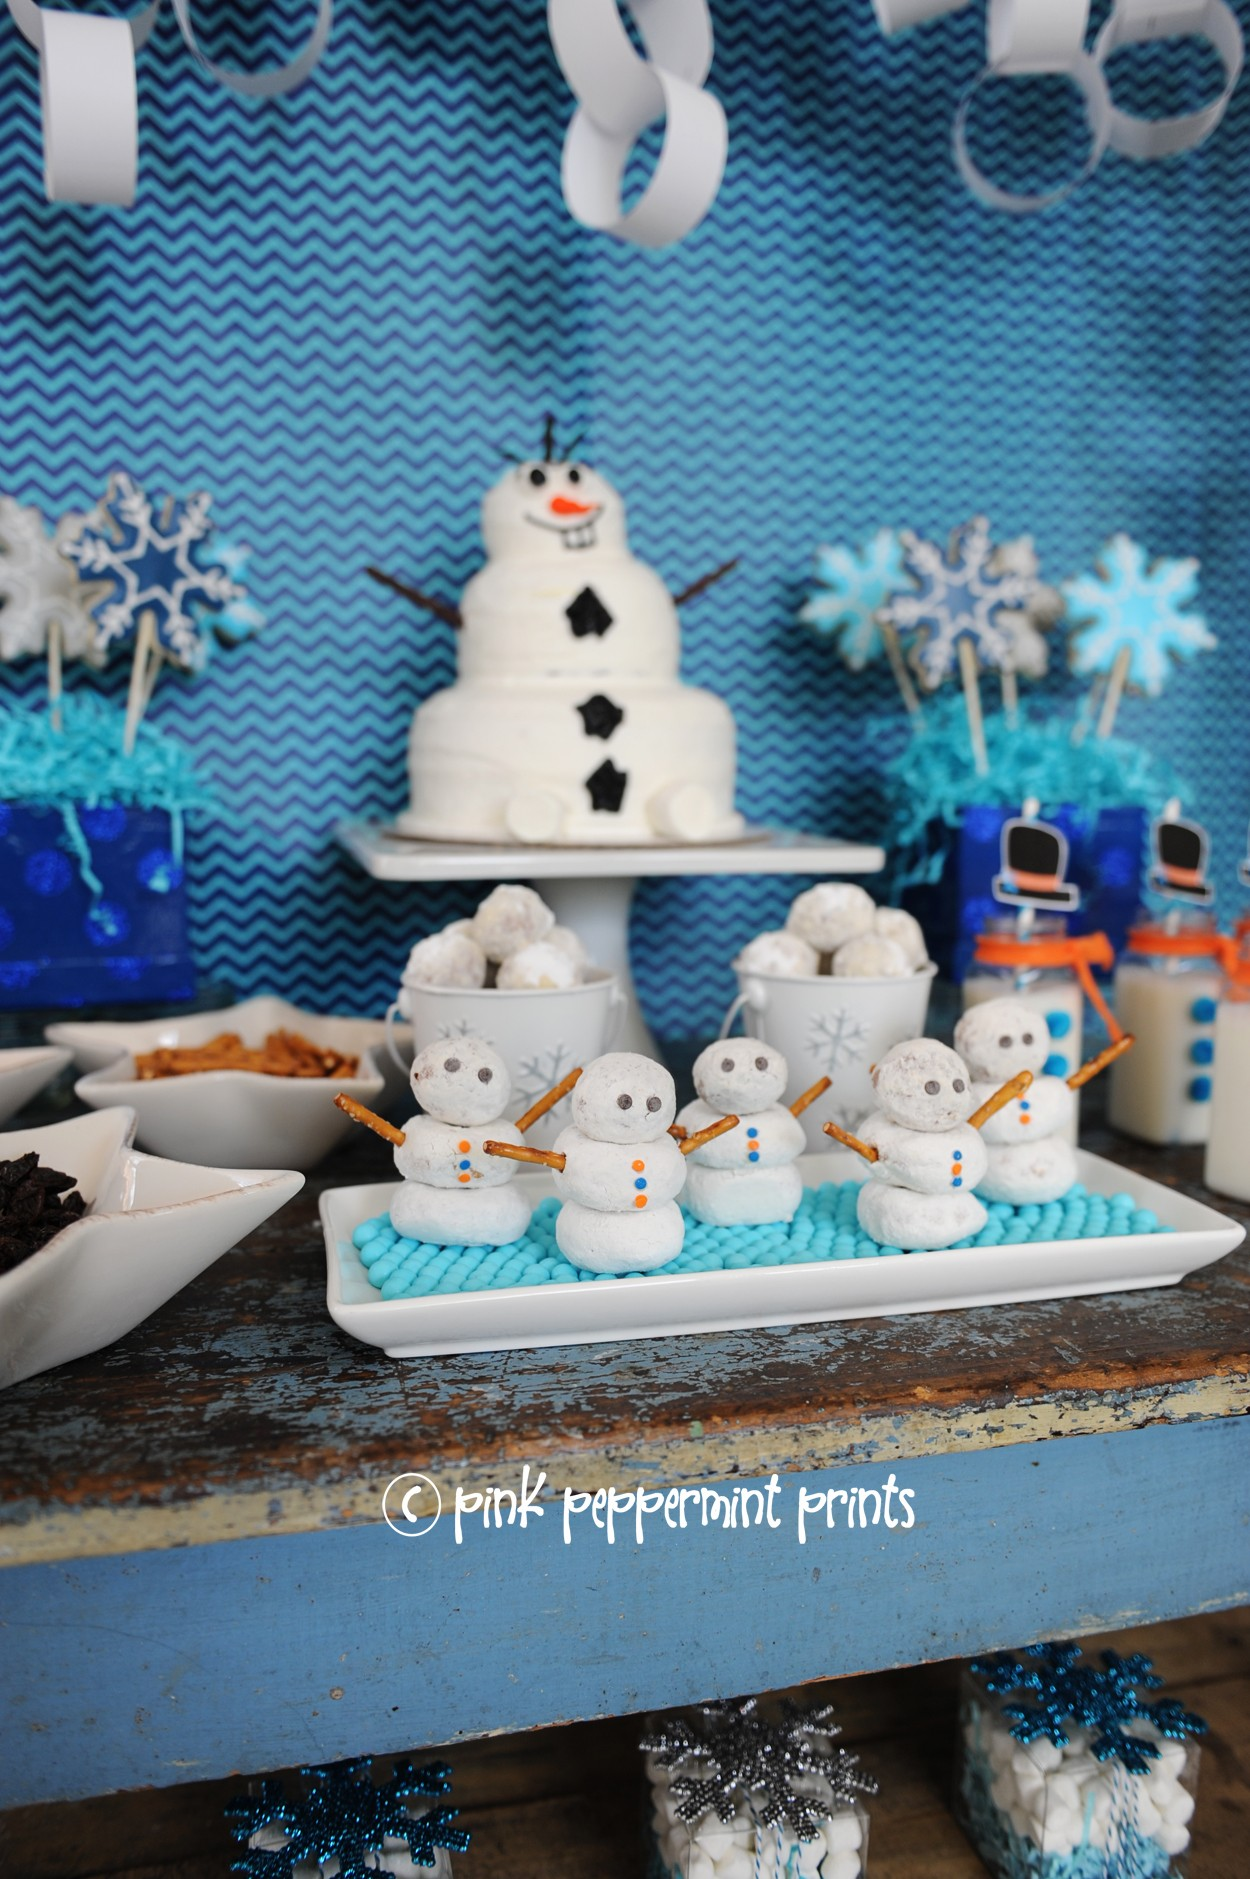 The Premise Of The Digital Short For Frozen Was A Snowman Olaf Who Sneezes And Come To Pieces It Was So Cute I Had The Crazy Idea Of Creating Snowman